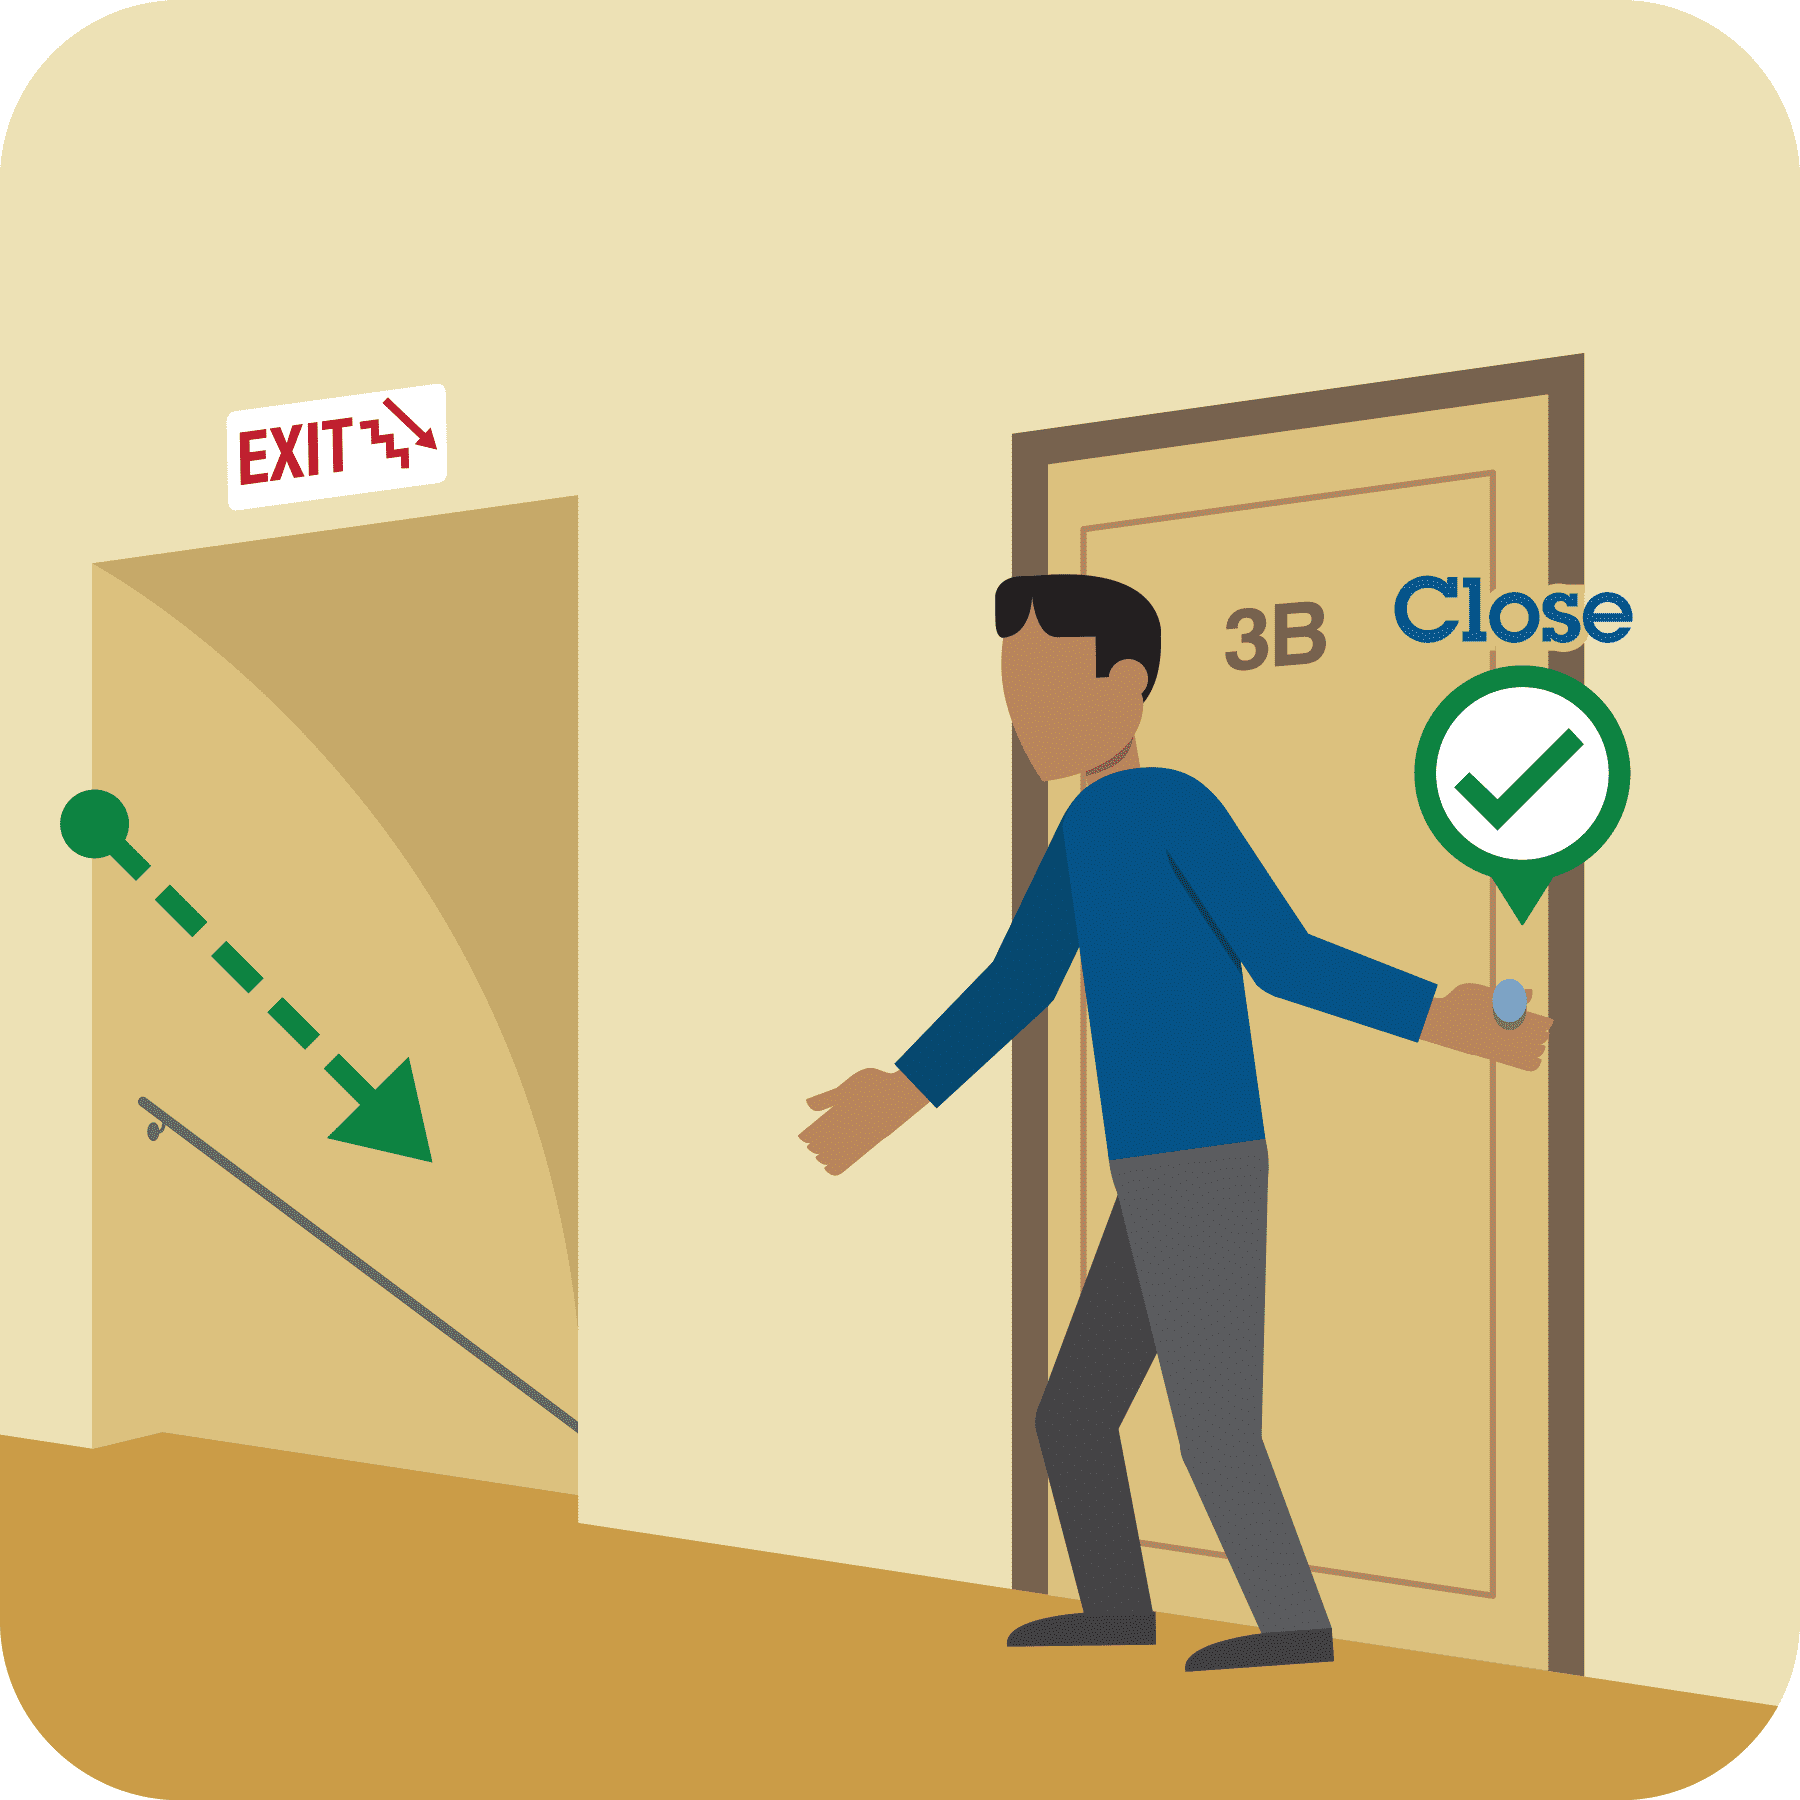 A man is closing an apartment door behind him, and there is an arrow pointing to the stairs